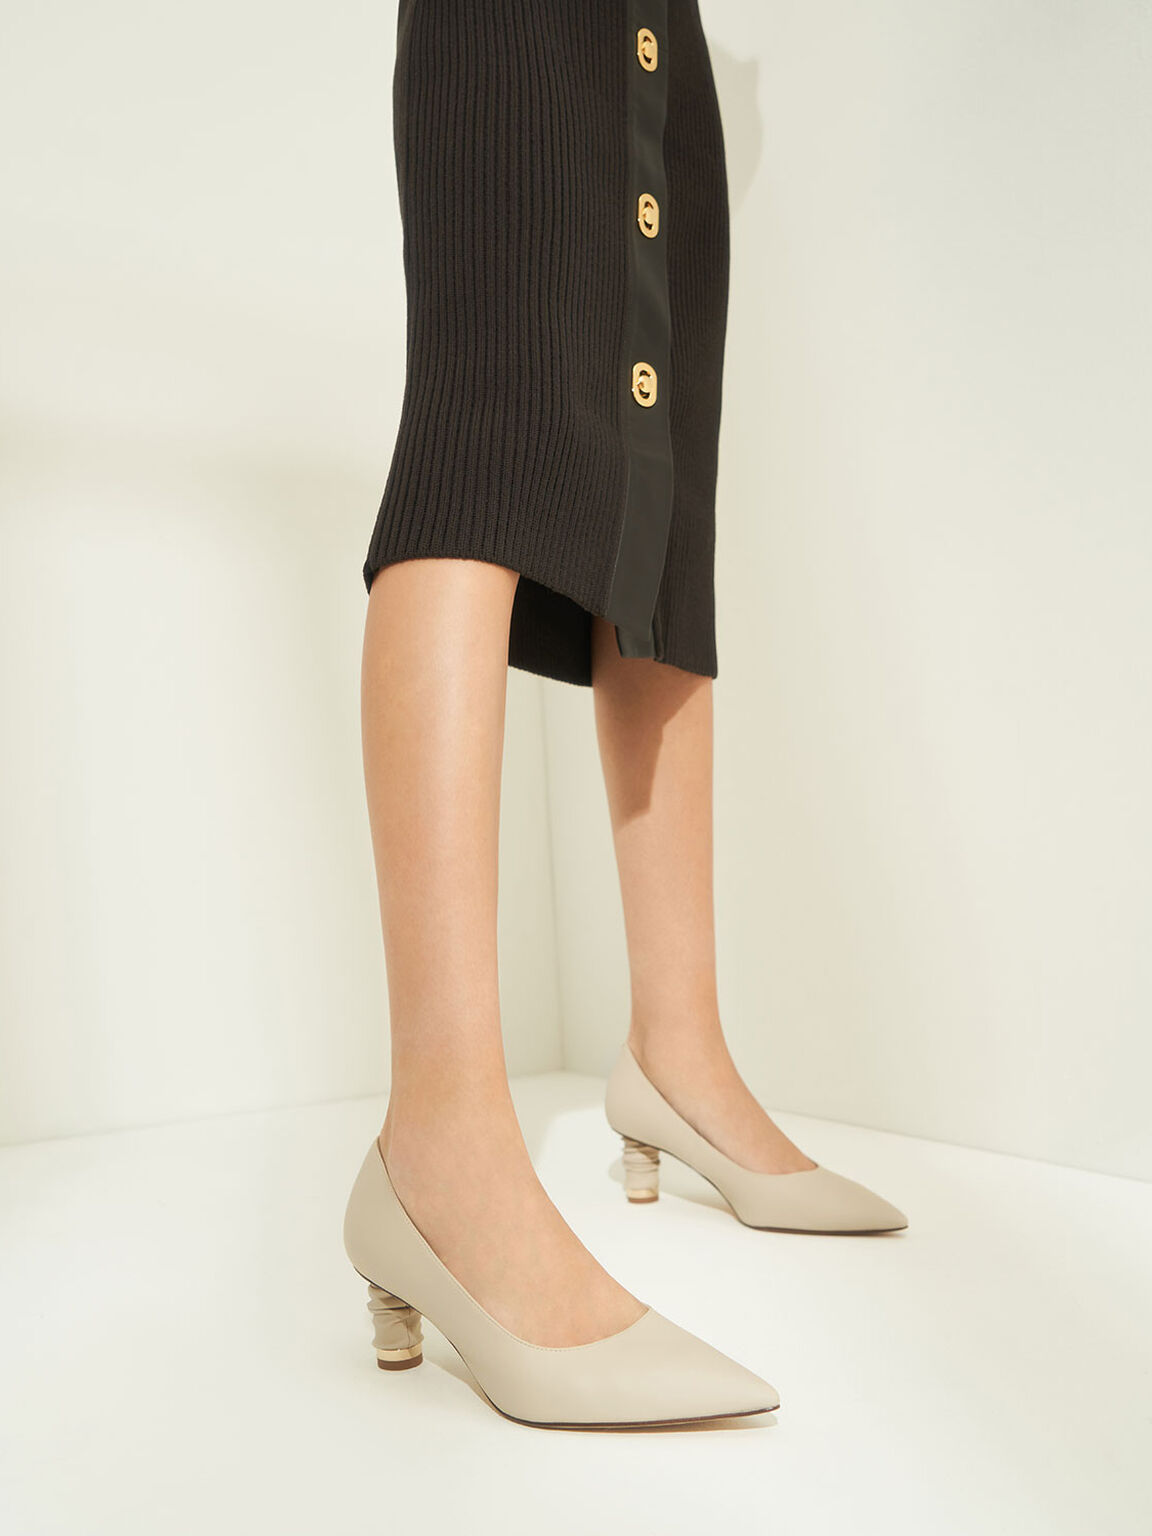 Cylindrical Heel Pointed Toe Pumps, Taupe, hi-res